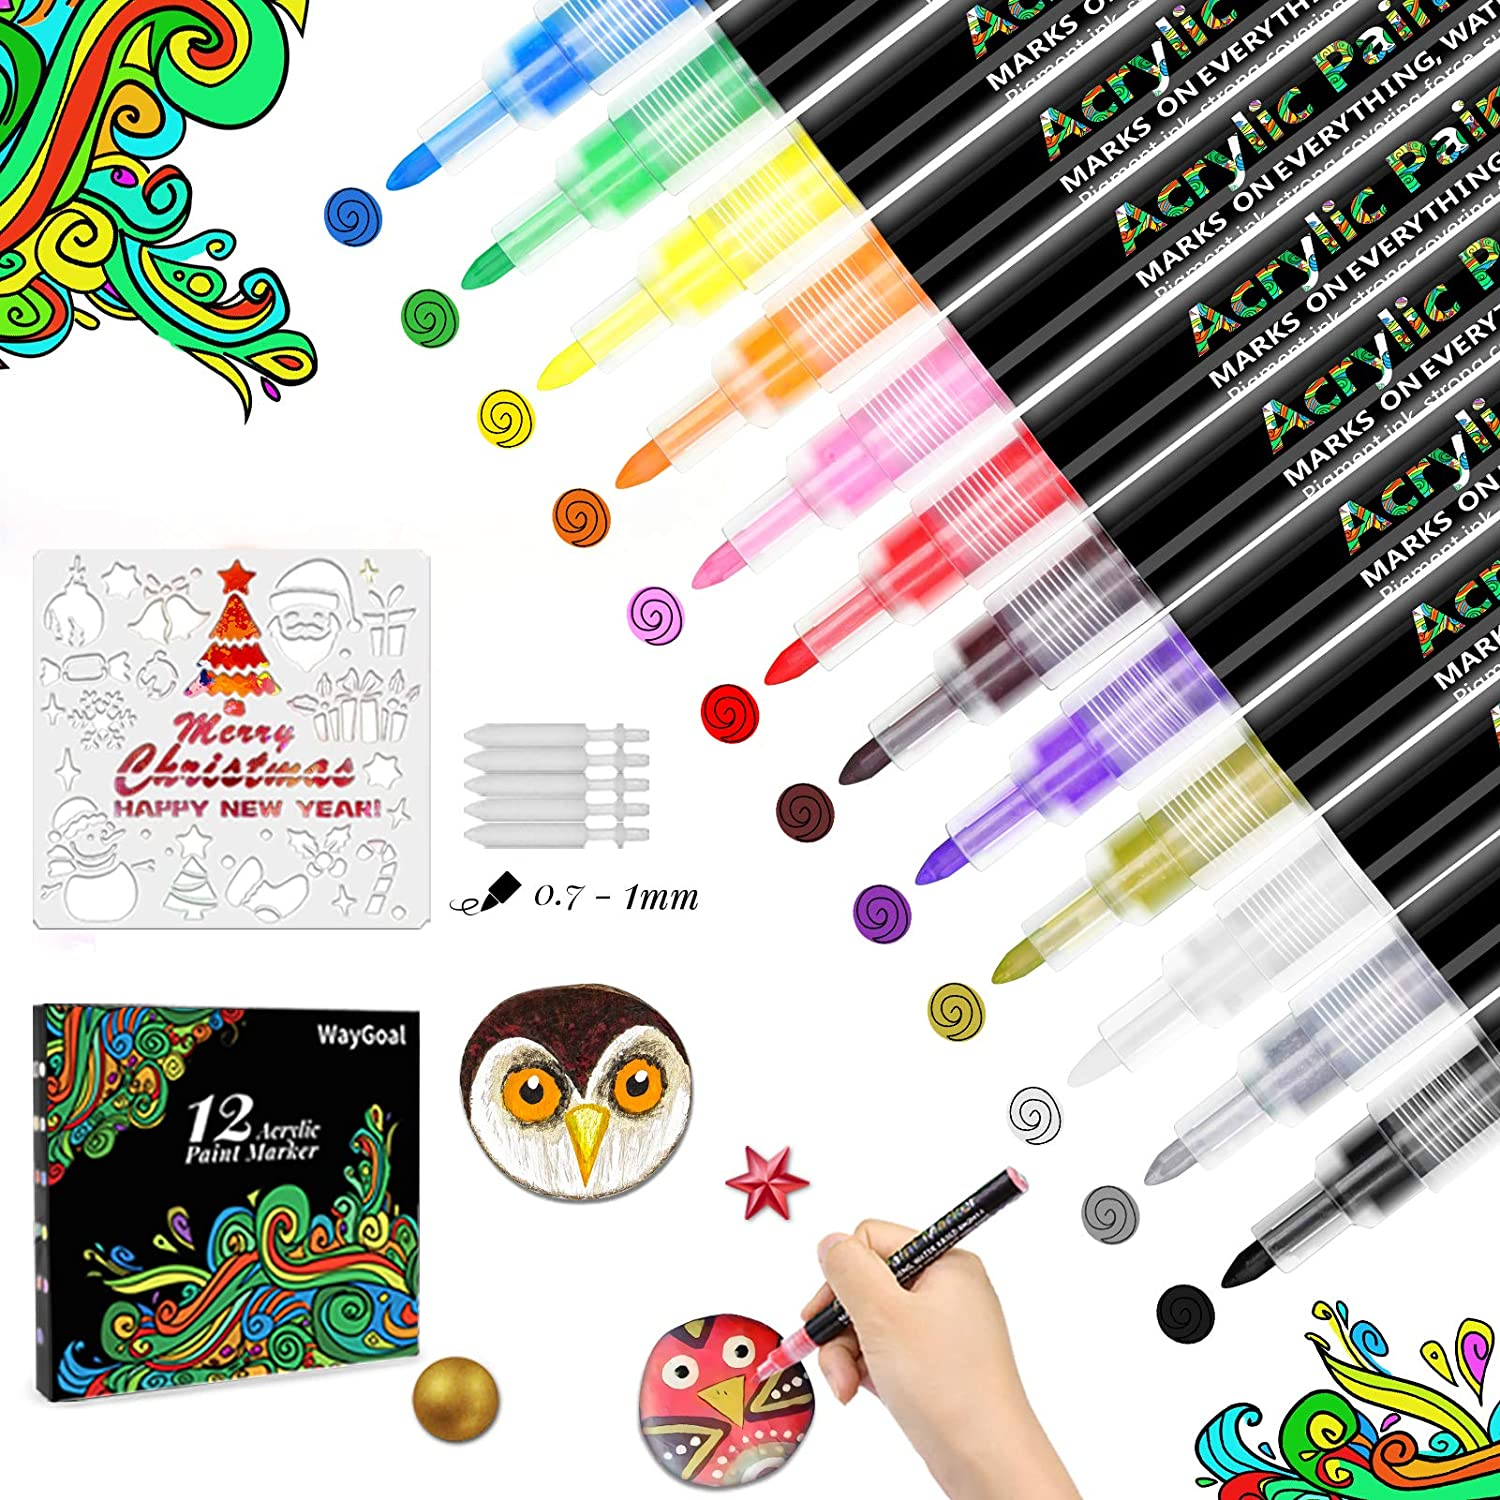 WayGoal Acrylic Paint Pens Very popular Marker Set of 12 With Special price Christm Colors